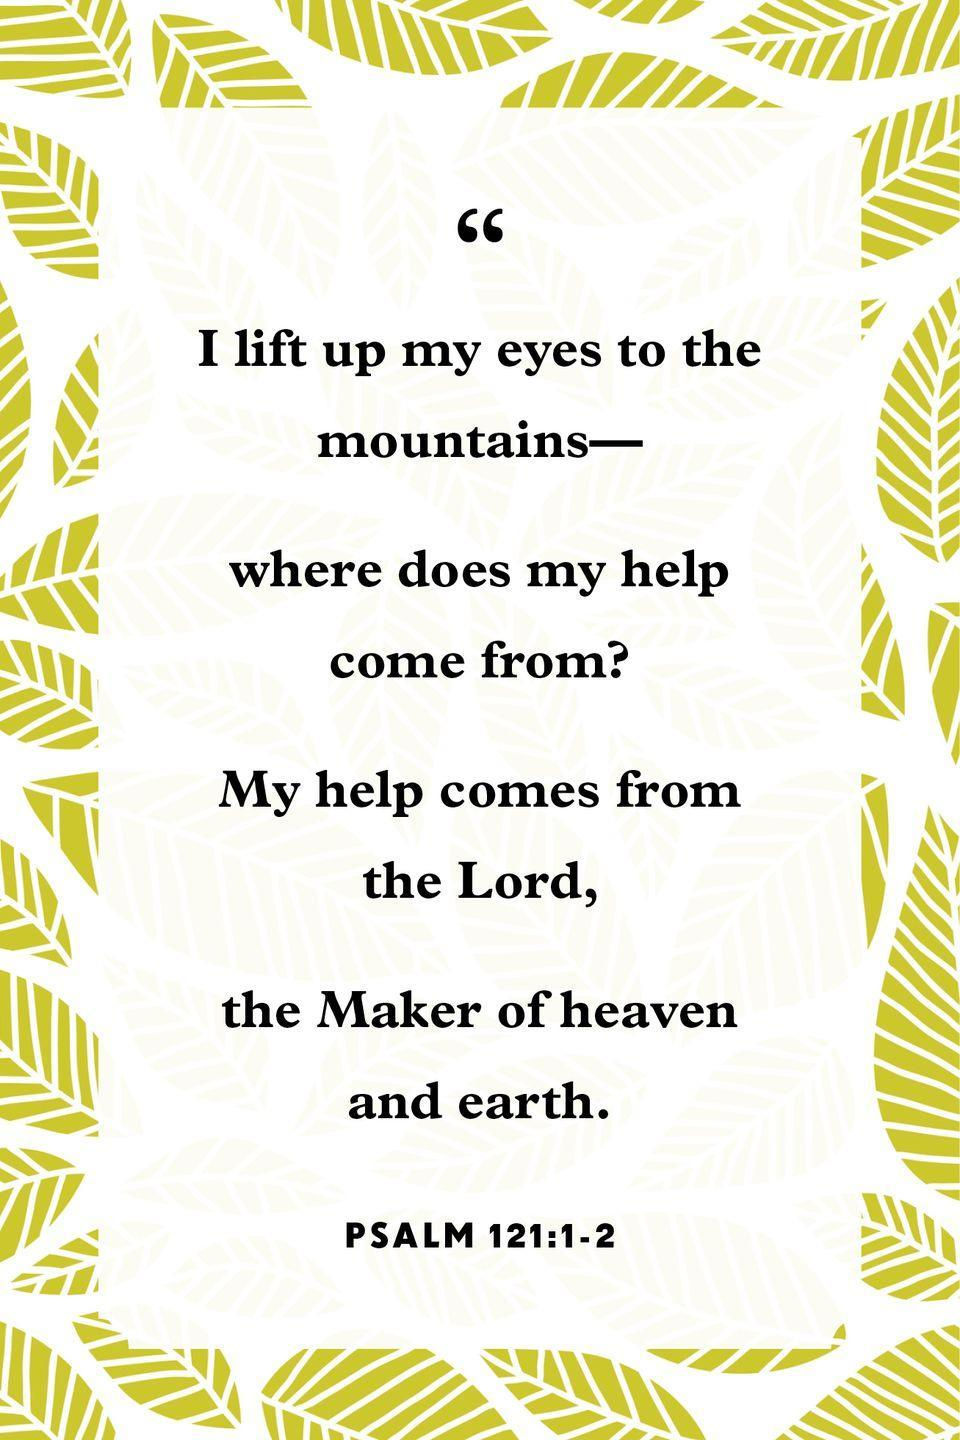 "<p>""I lift up my eyes to the mountains—<br>where does my help come from?<br>My help comes from the Lord,<br>the Maker of heaven and earth.""</p>"